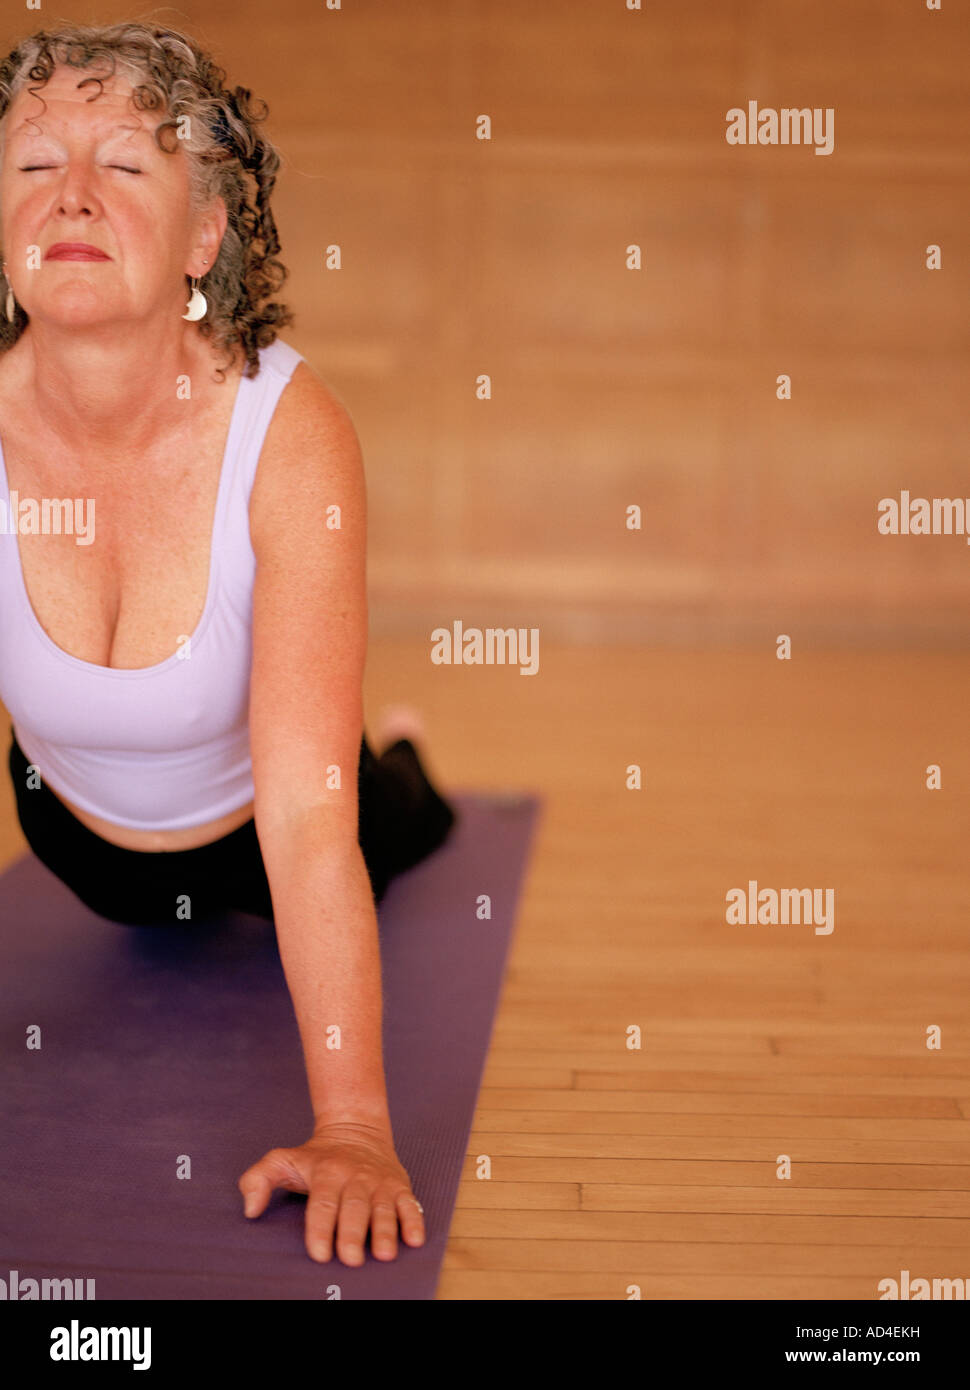 Woman in the cobra pose - Stock Image